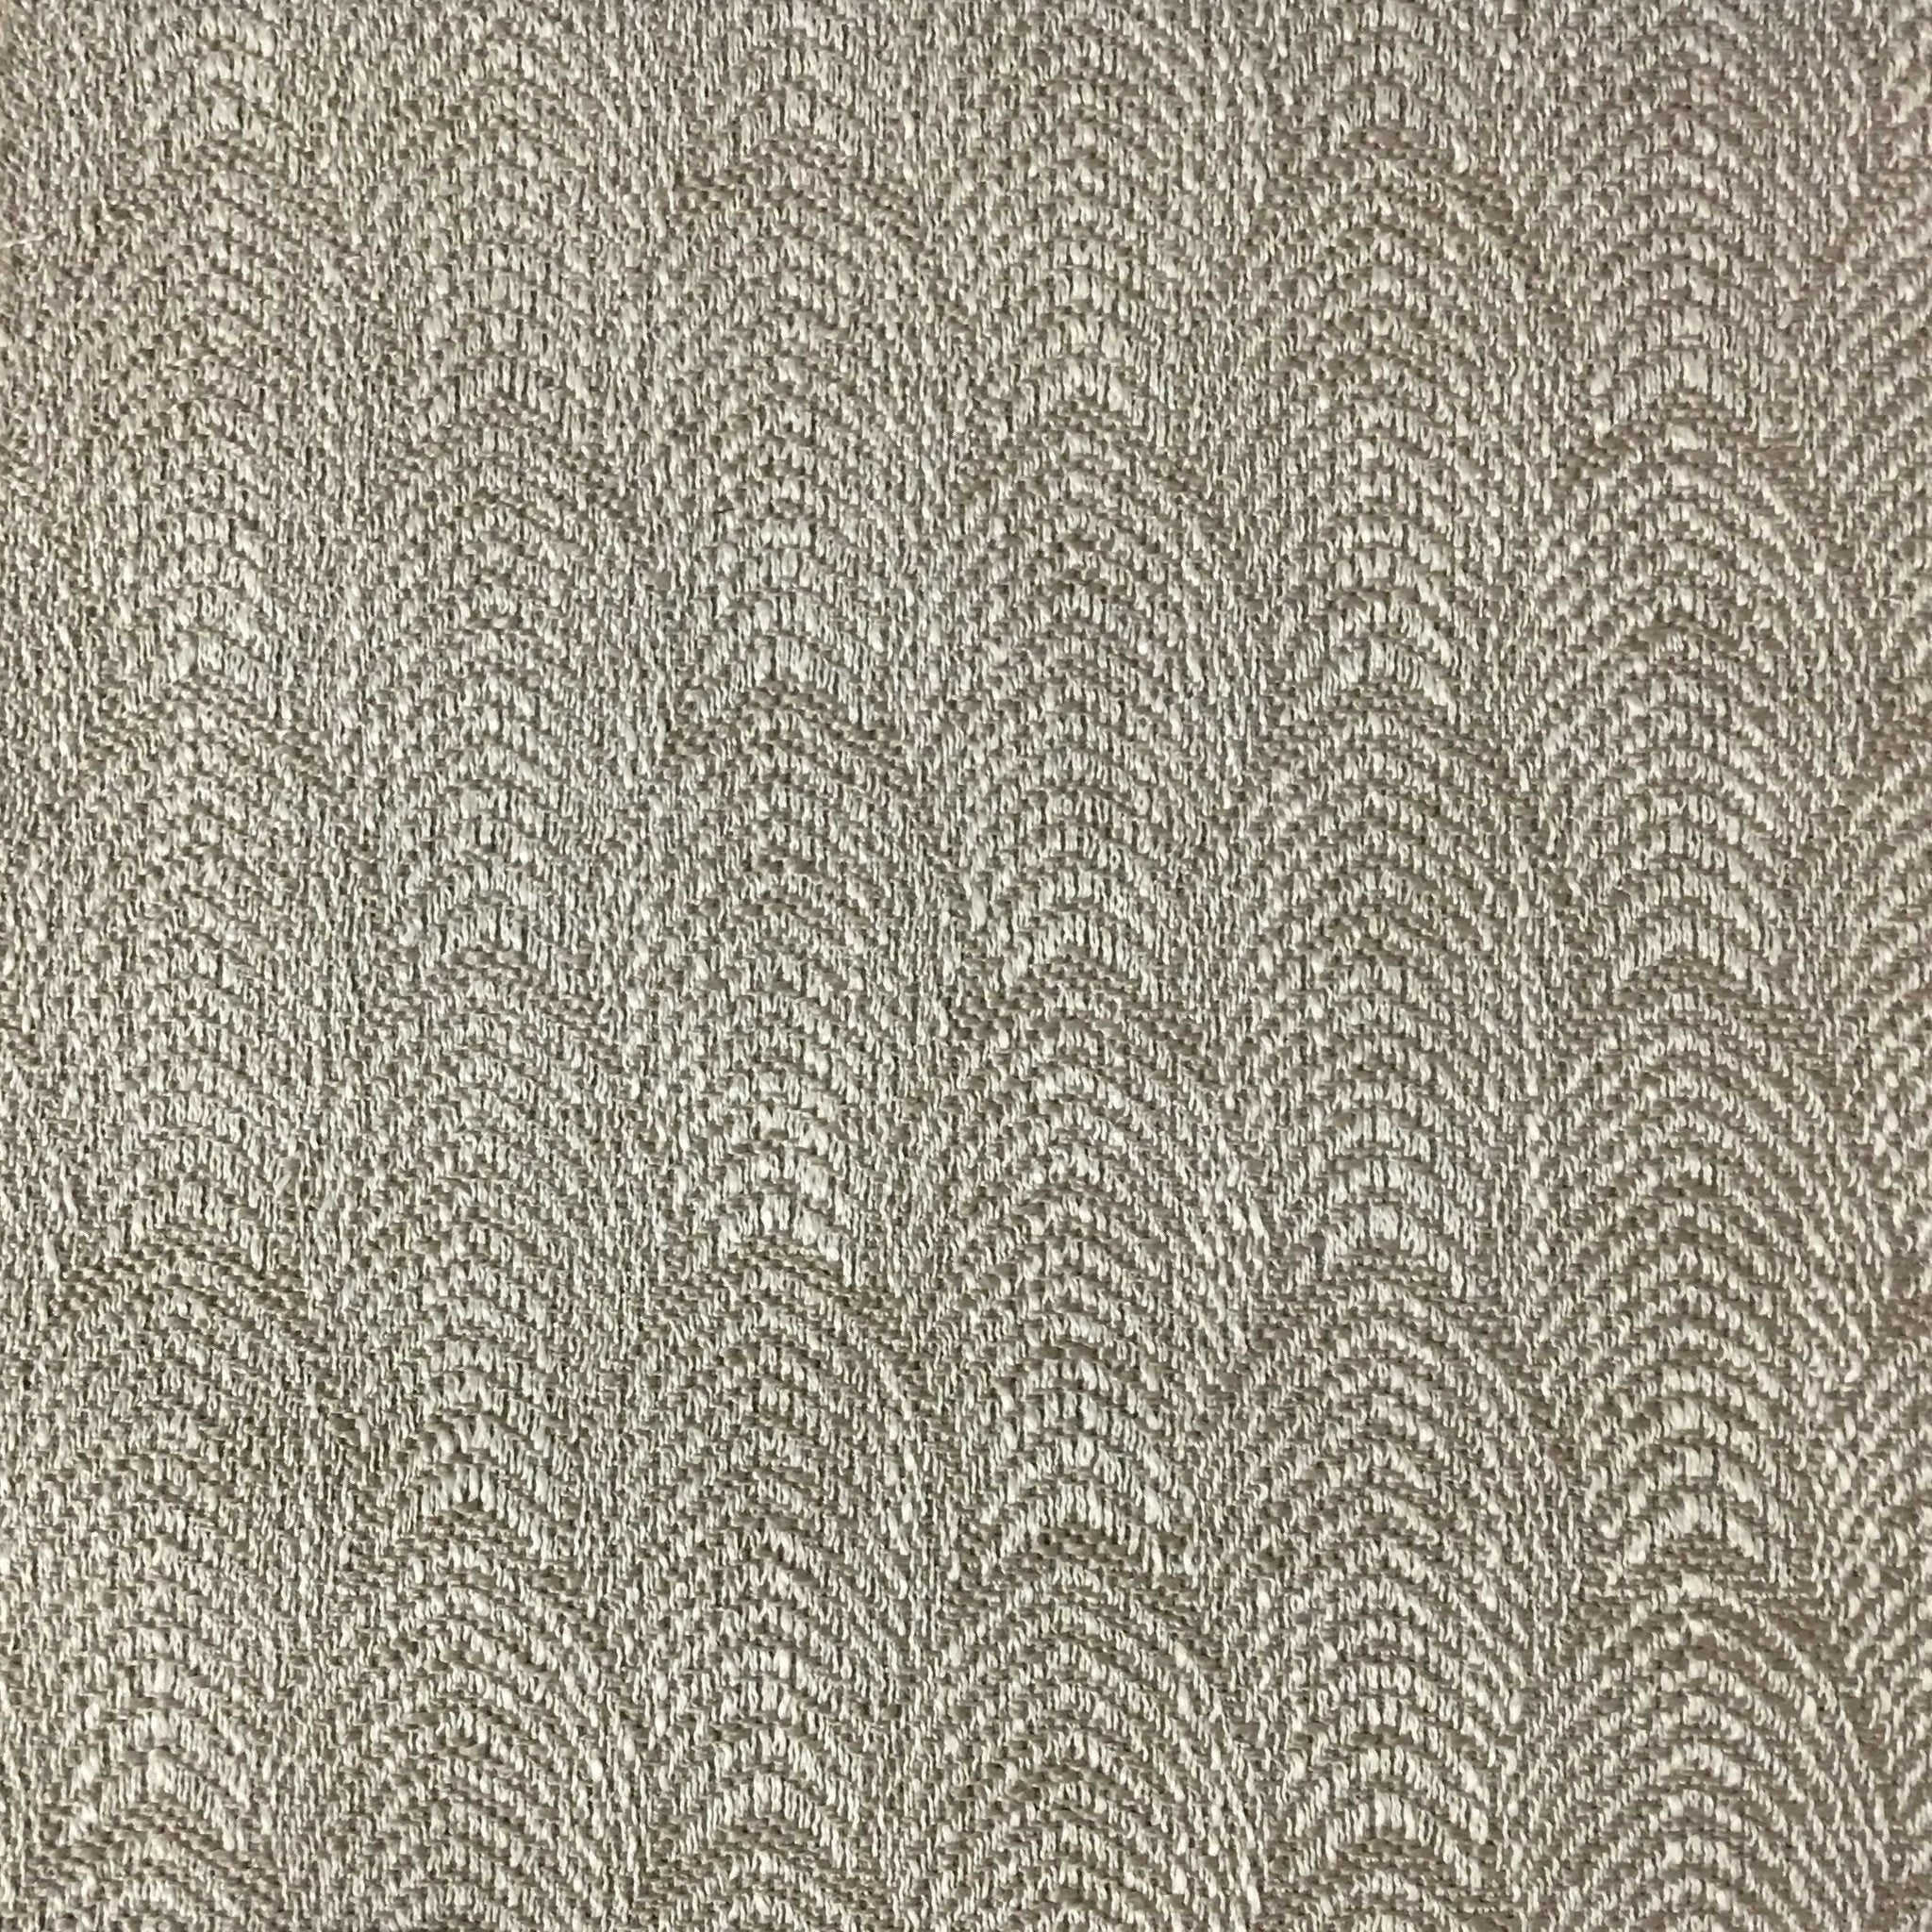 Suede Upholstery Fabric >> Carnaby - Jacquard Designer Pattern Upholstery Fabric by the Yard